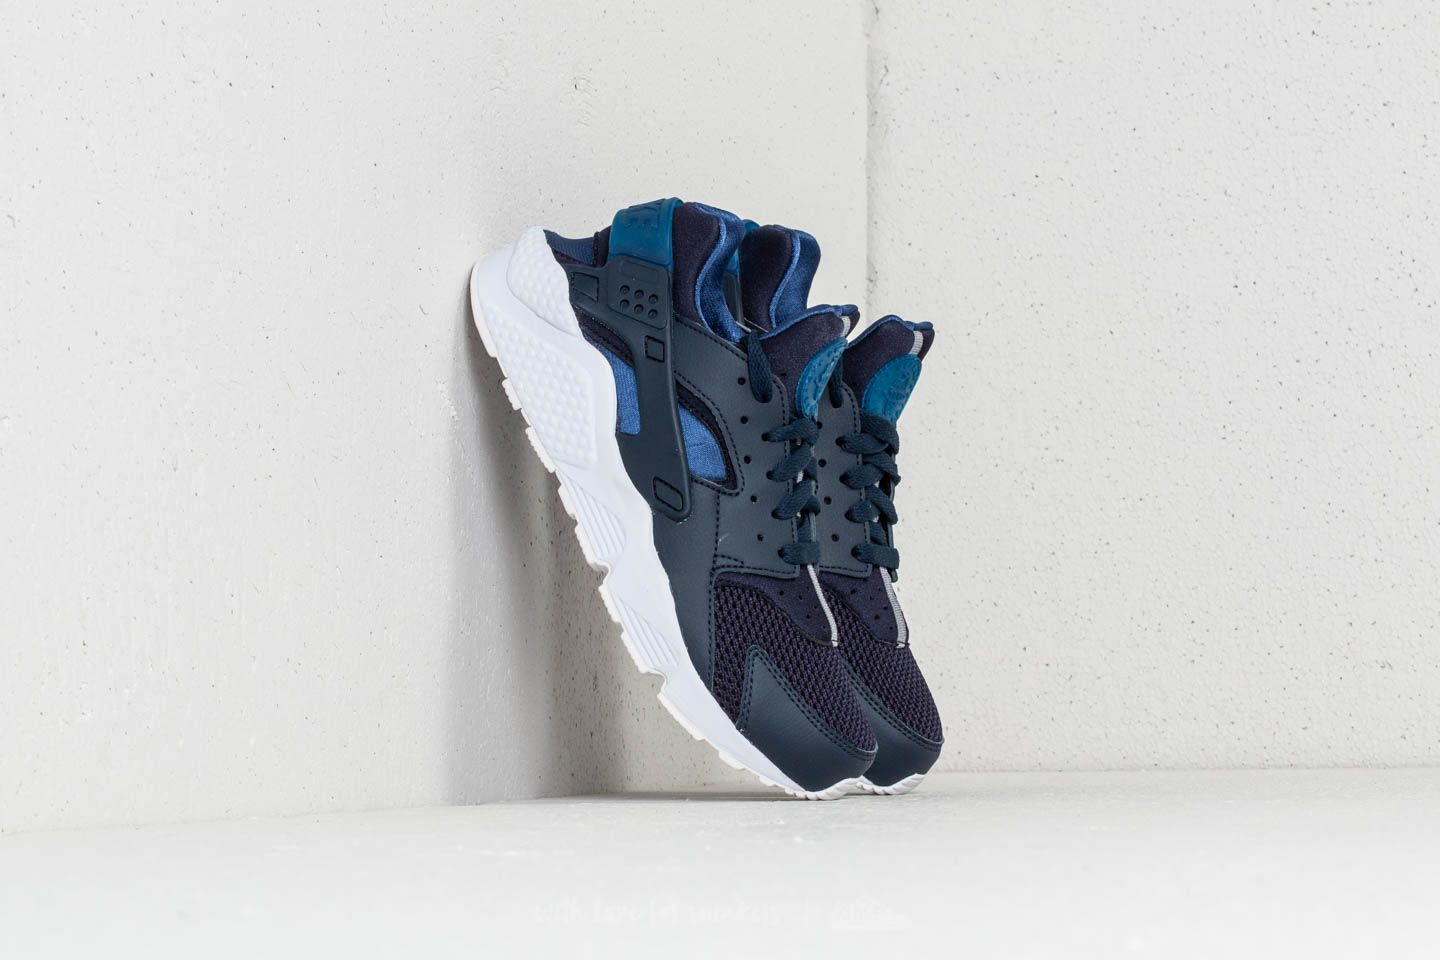 Nike Air Huarache Obsidian/ Gym Blue-White